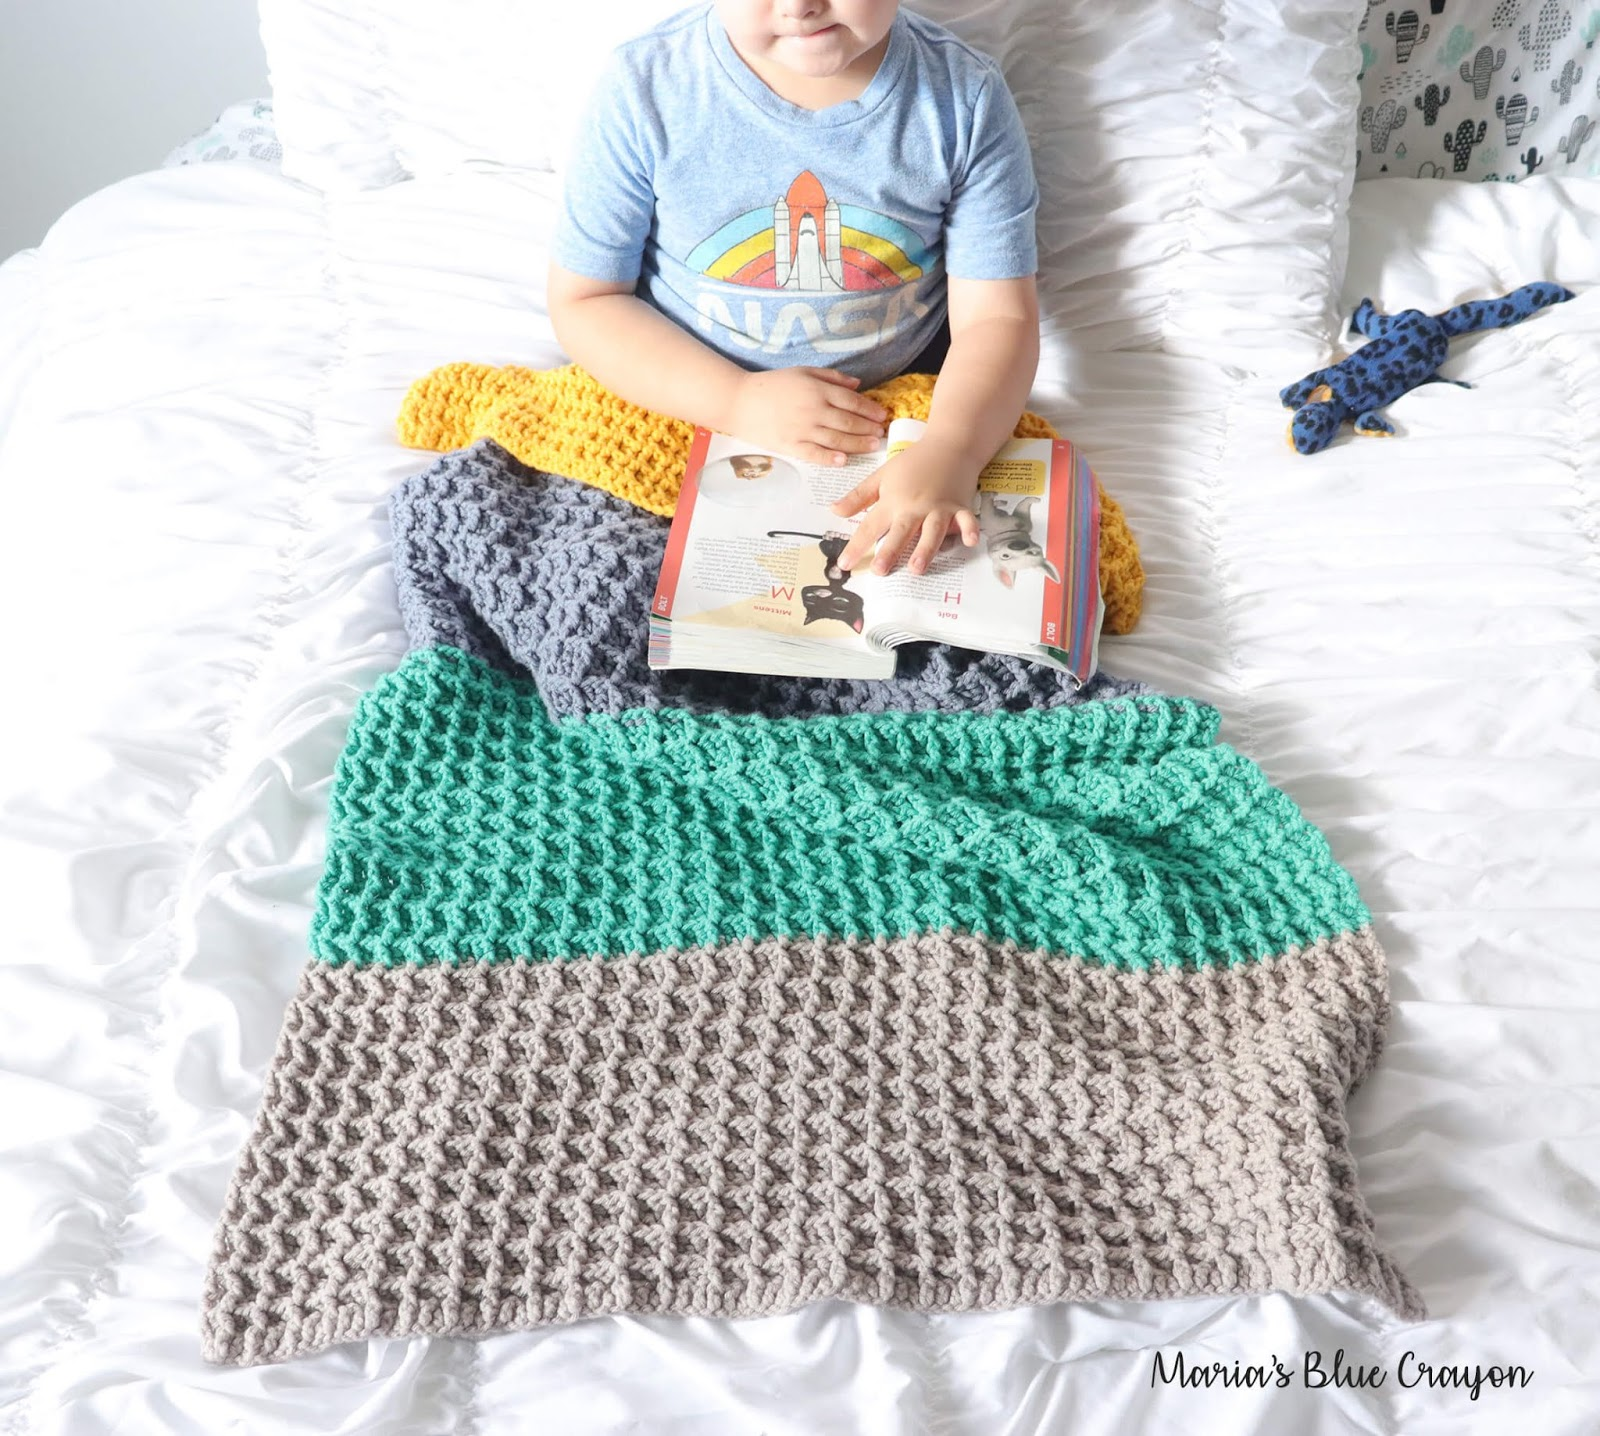 Color Block Crochet Blanket Free Crochet Pattern Maria S Blue Crayon